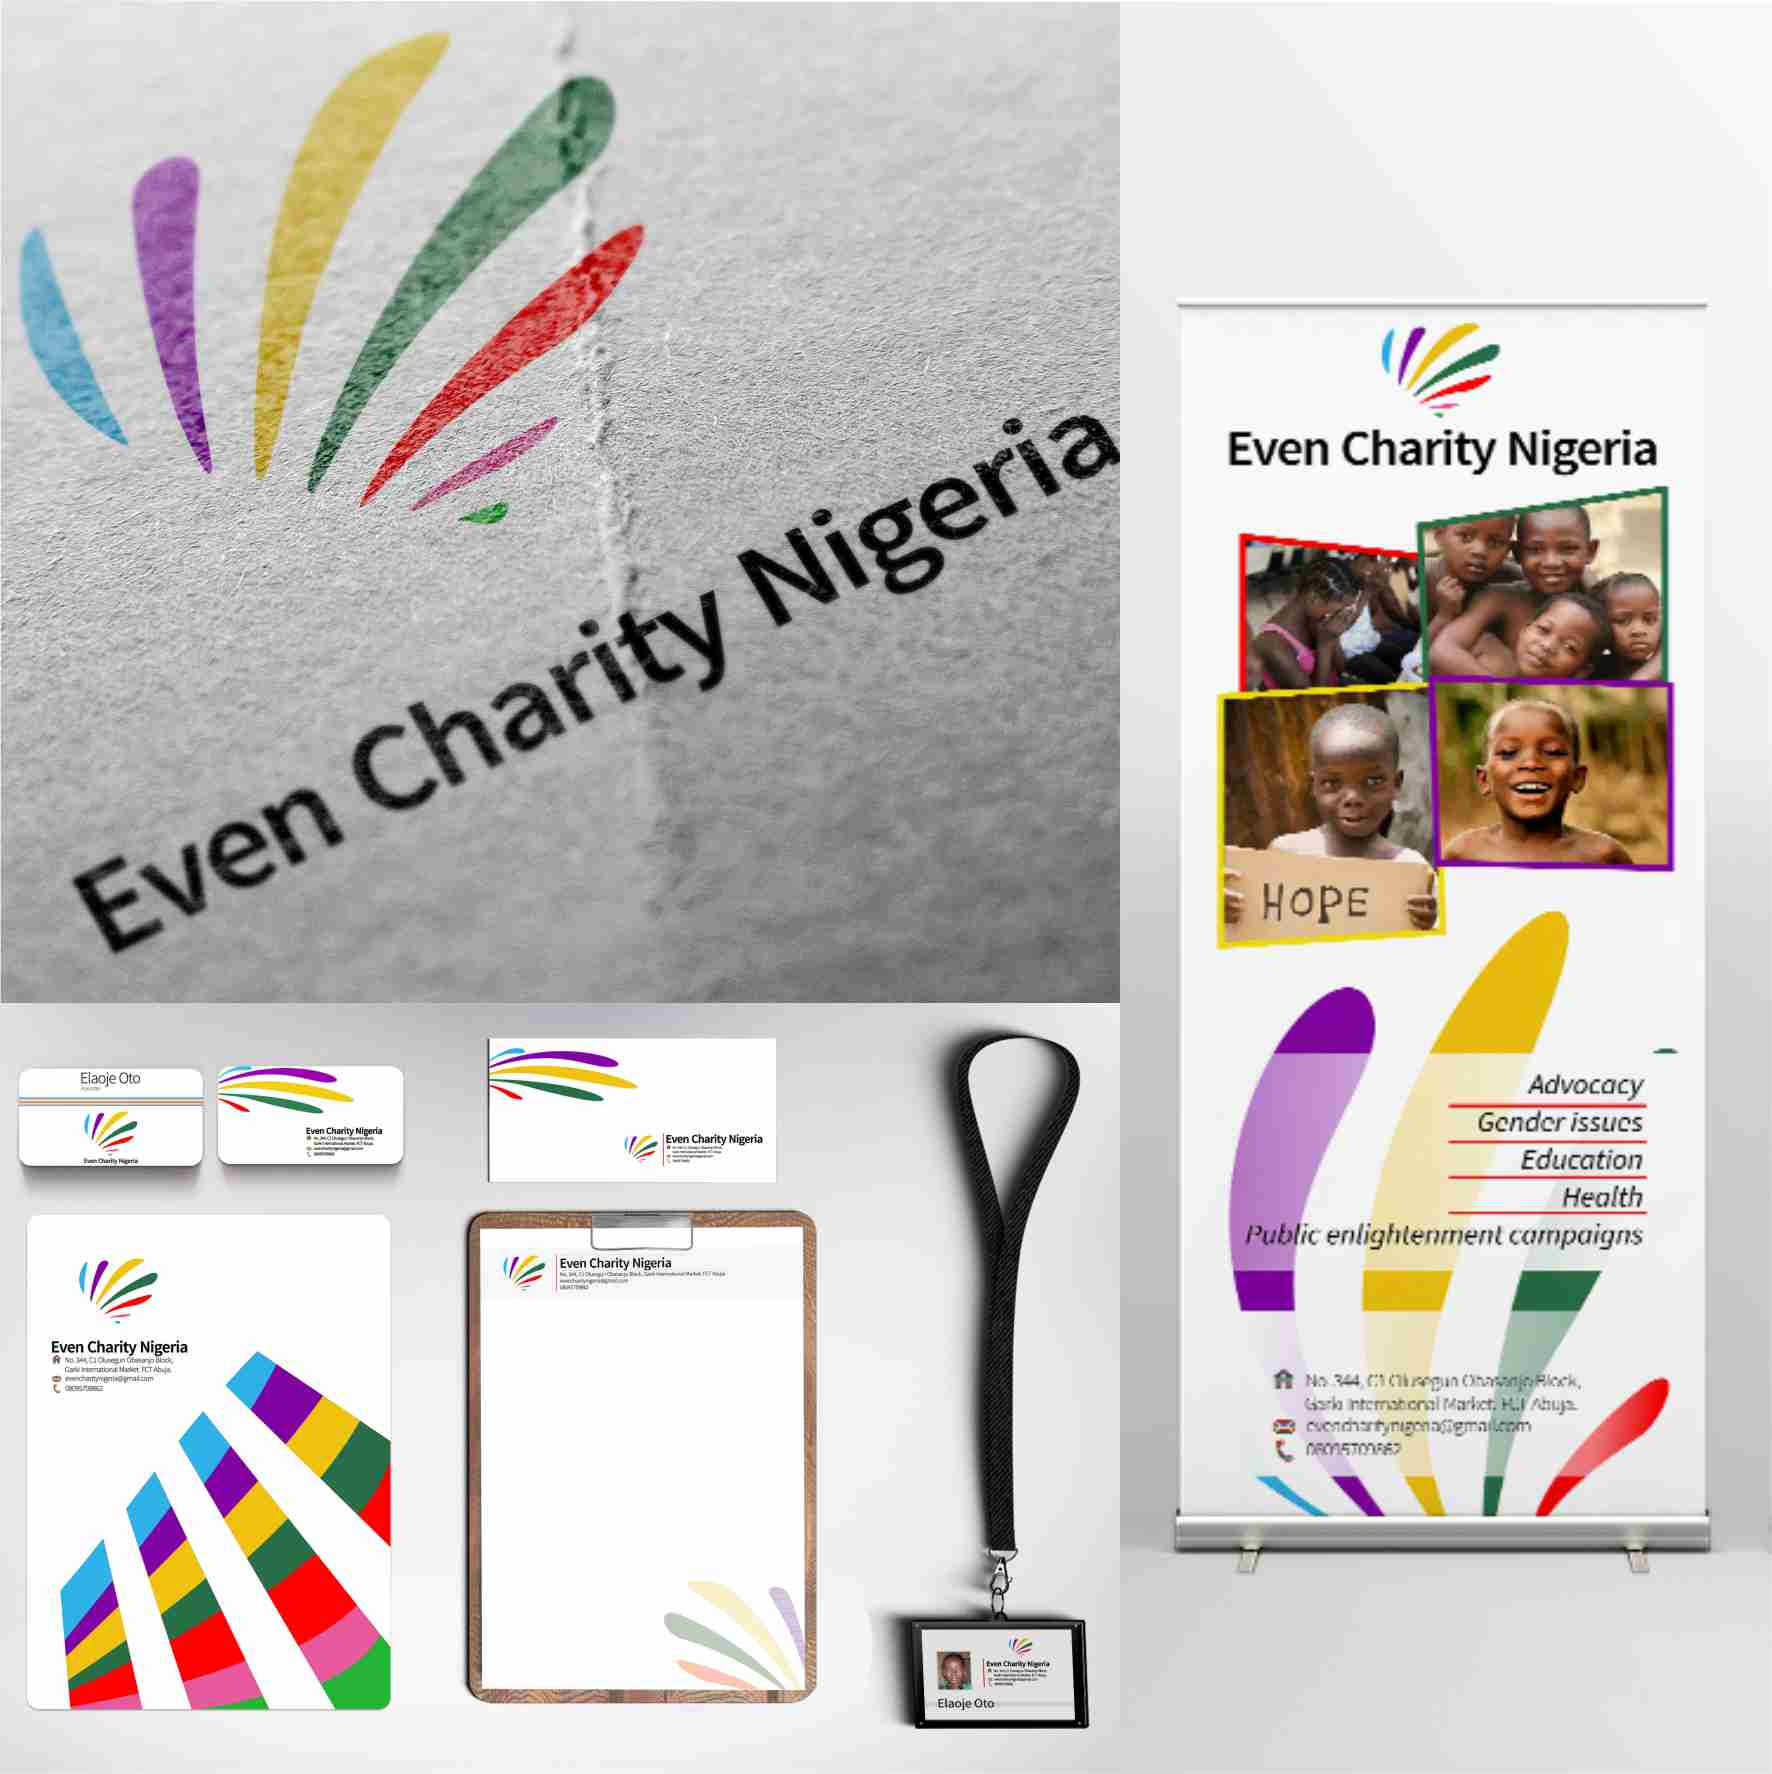 Even Charity Nigeria graphics design branding by David Rotimi